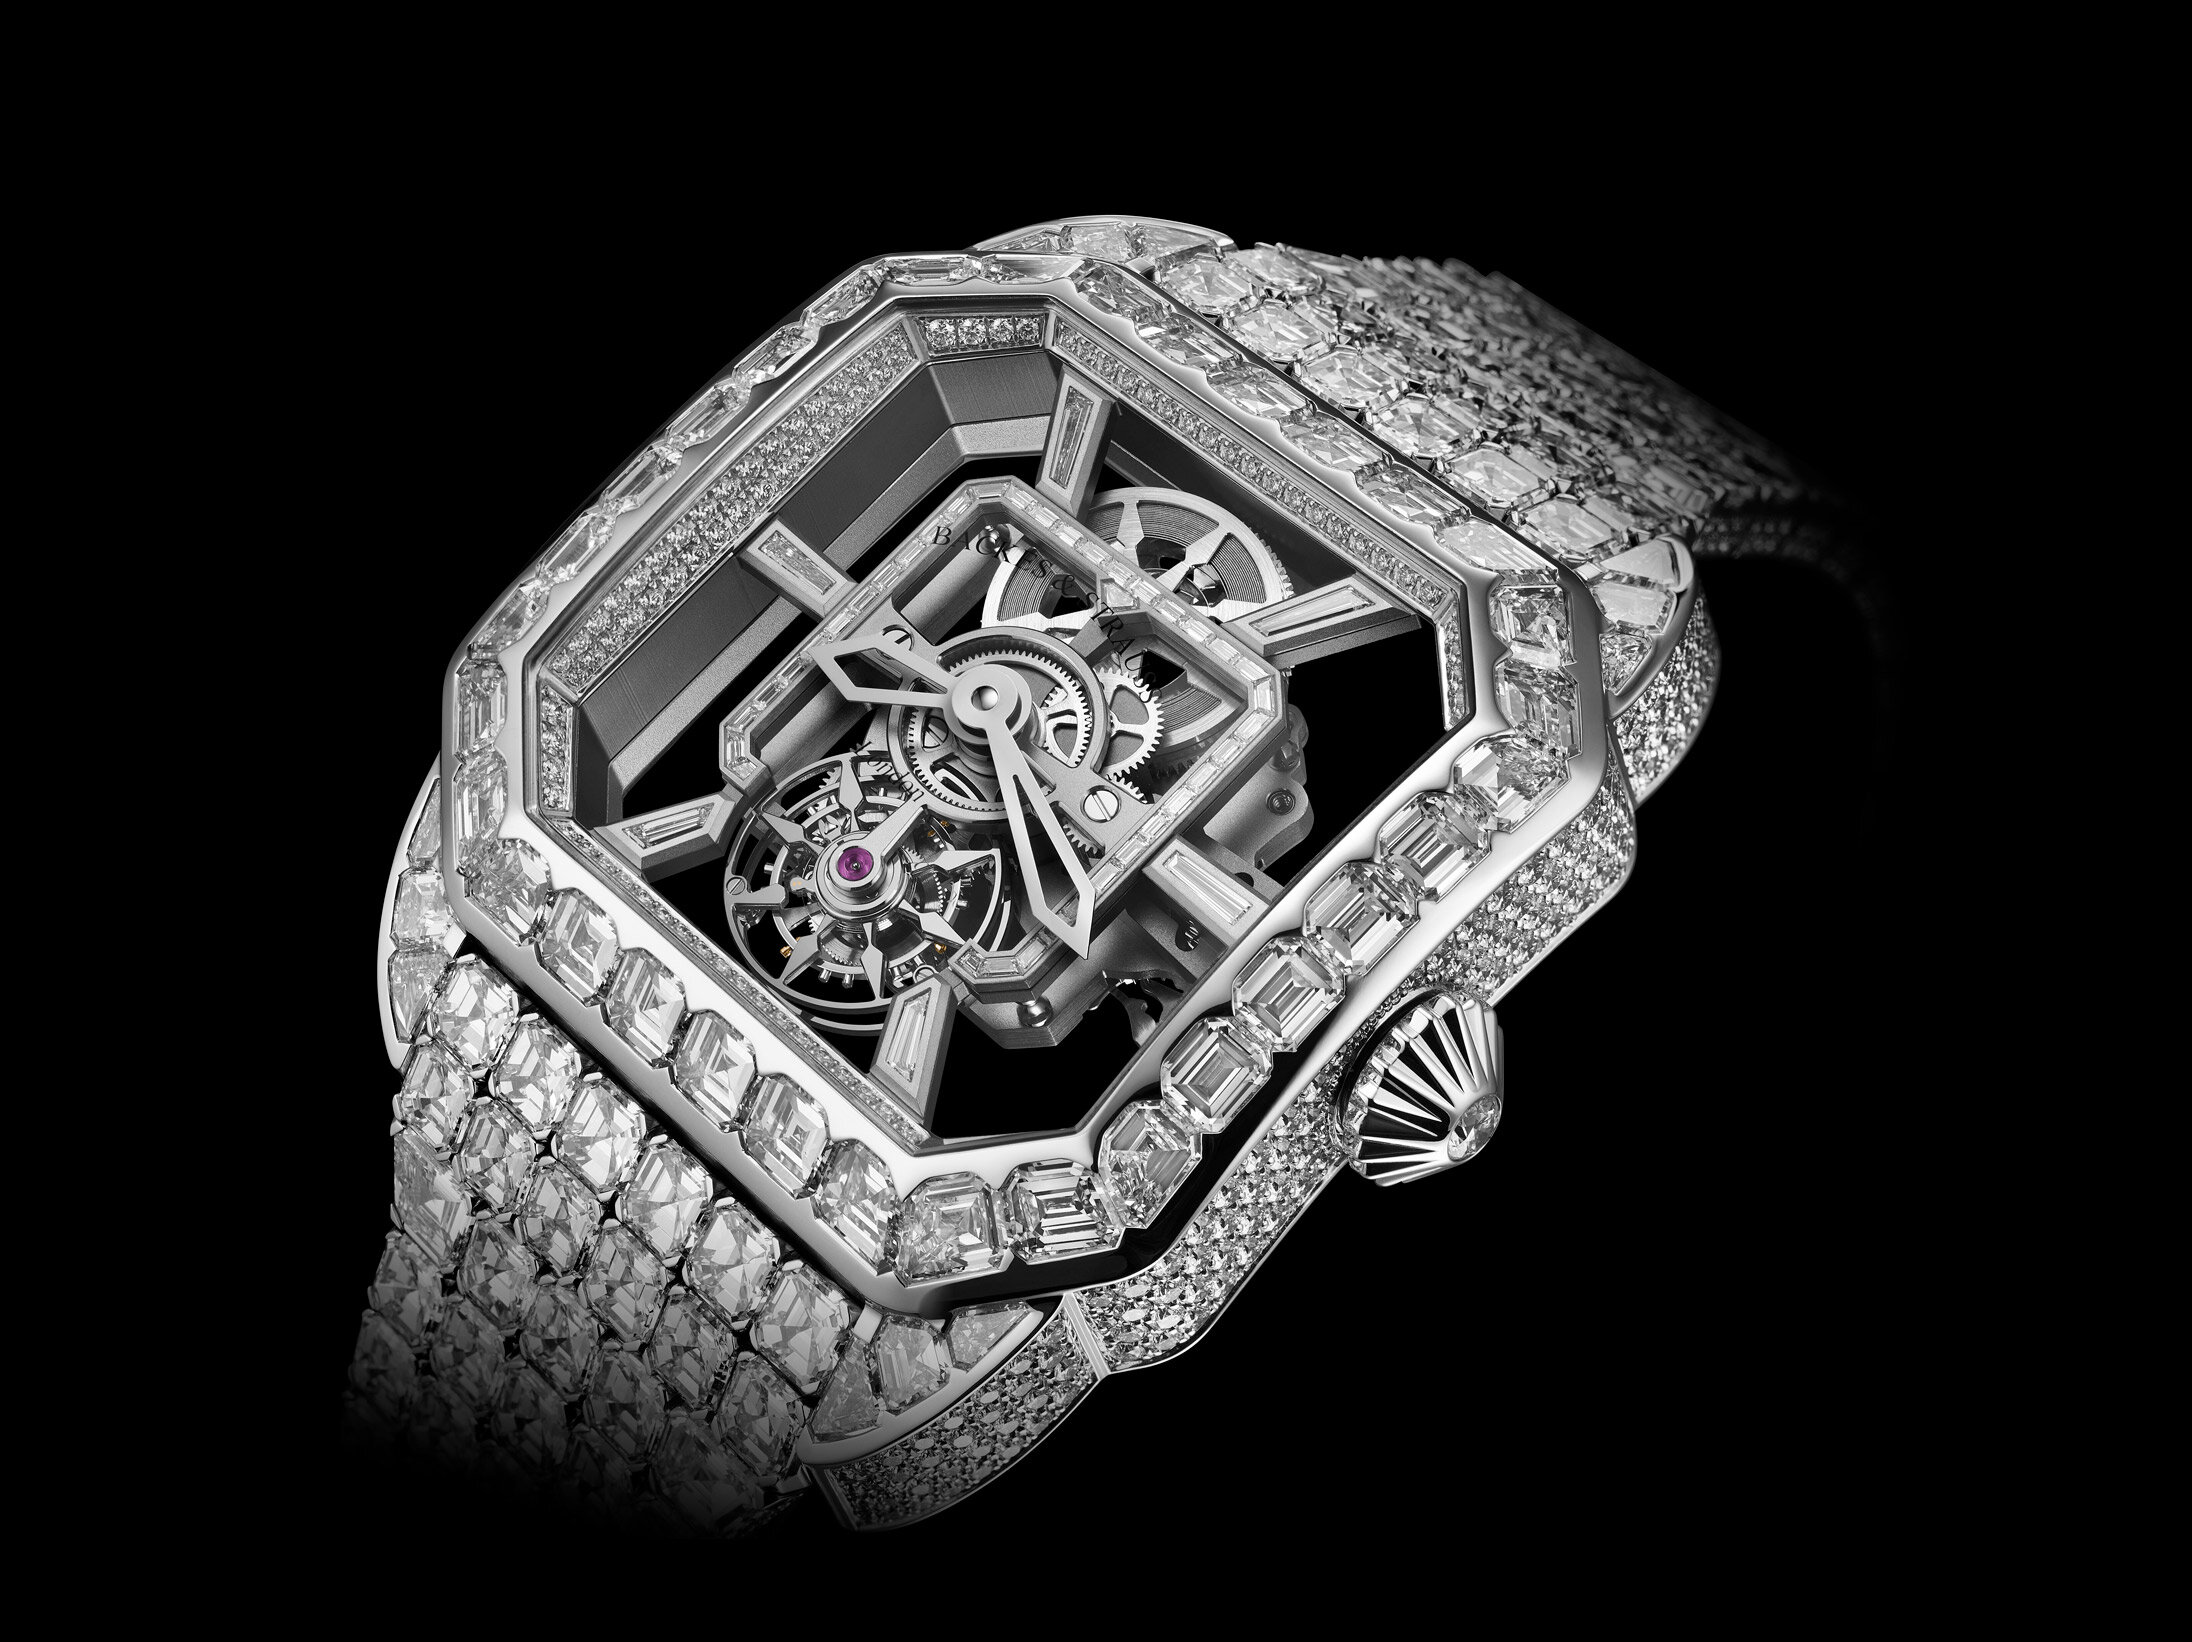 MASTERS OF DIAMONDS SINCE 1789 - British luxury timepiece creator with 230 years of heritage and unparalleled craftsmanship in diamonds.